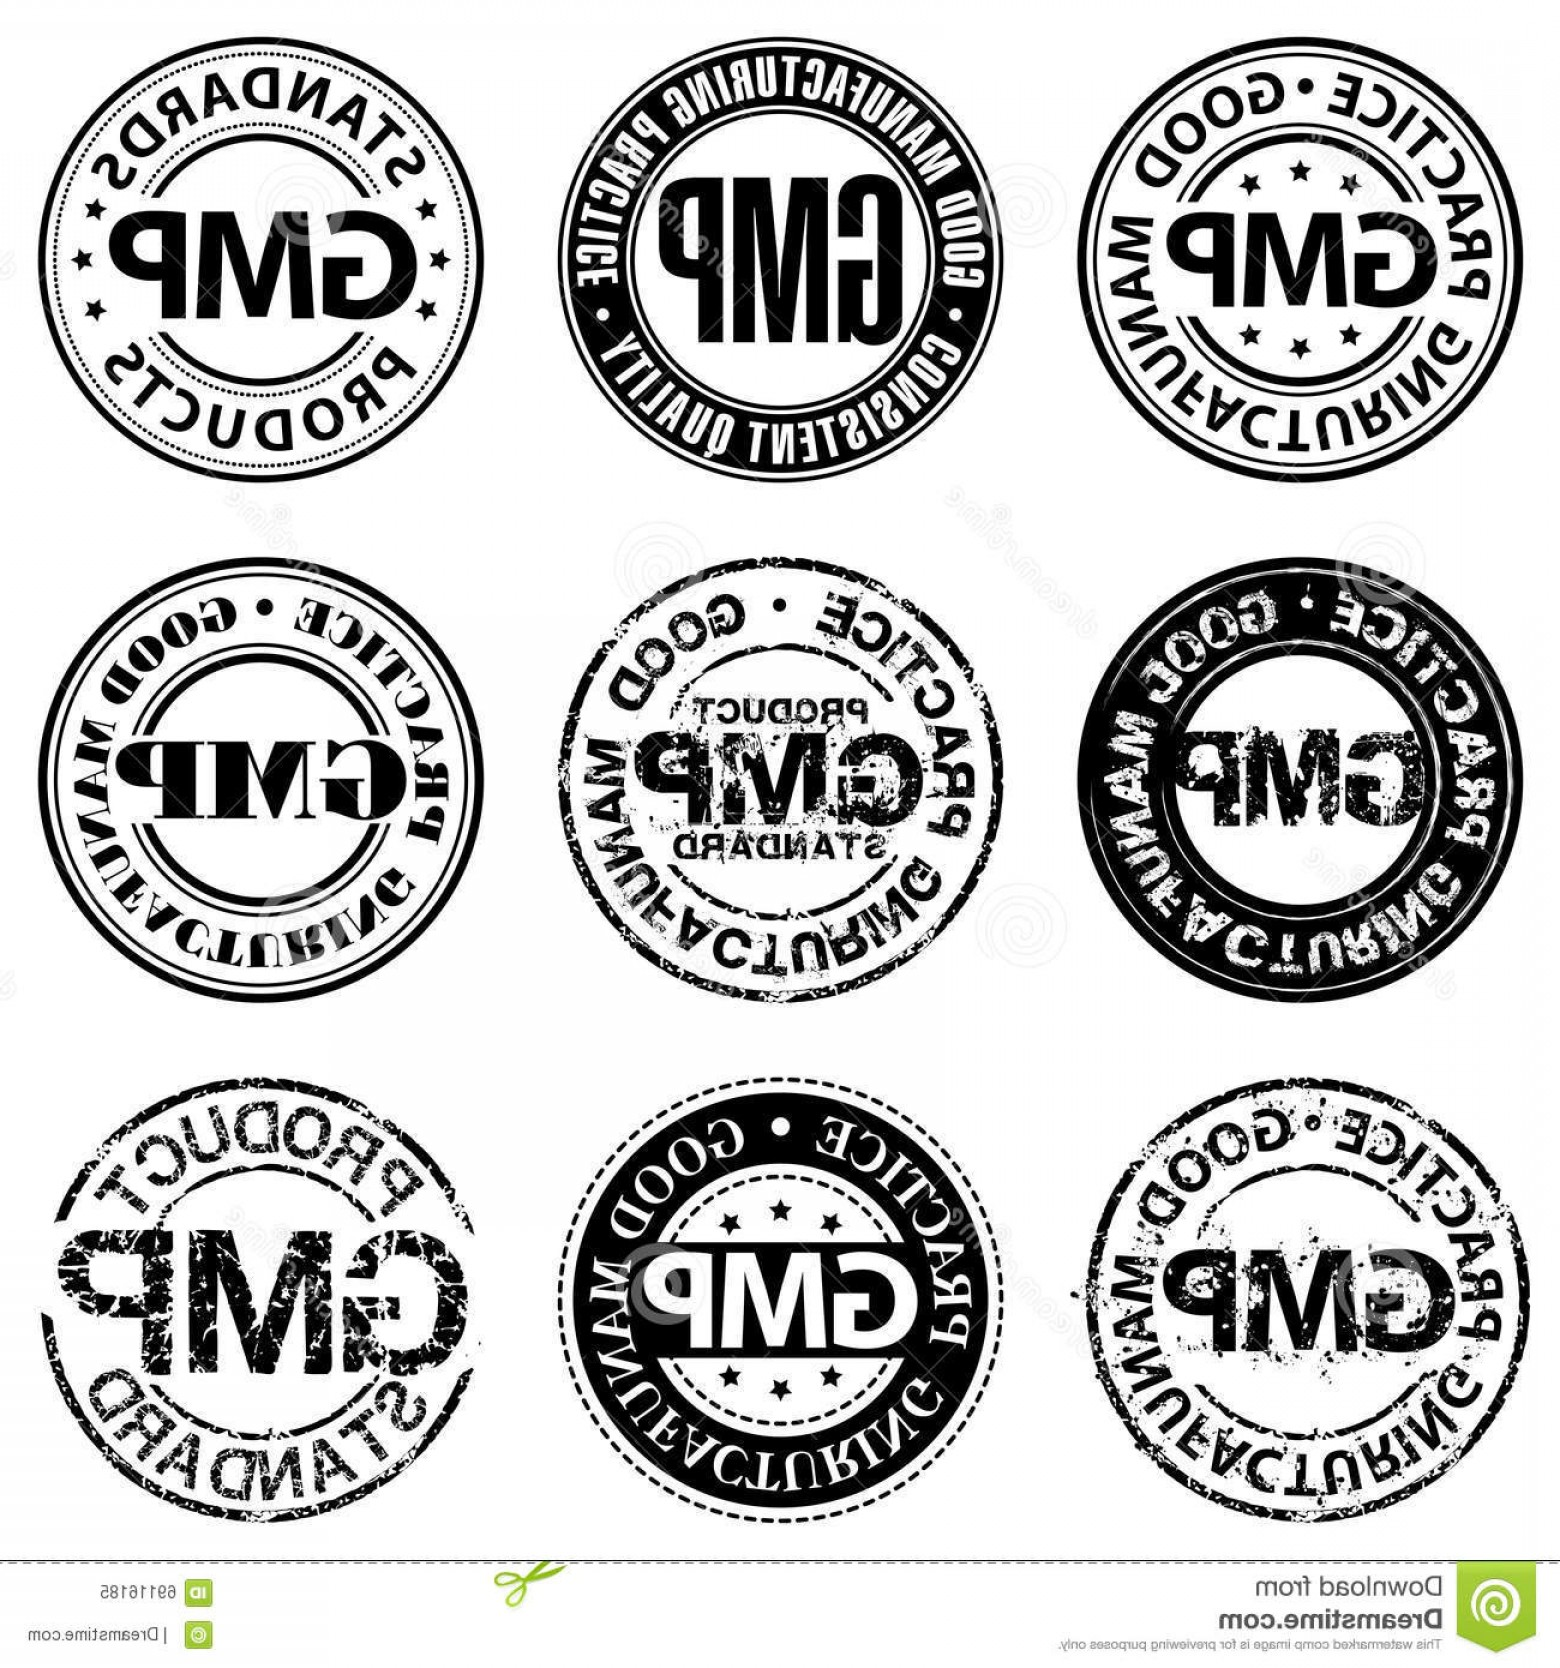 GMP Logo Vector: Stock Illustration Good Manufacturing Practice Stamp Design Variations Sign Image